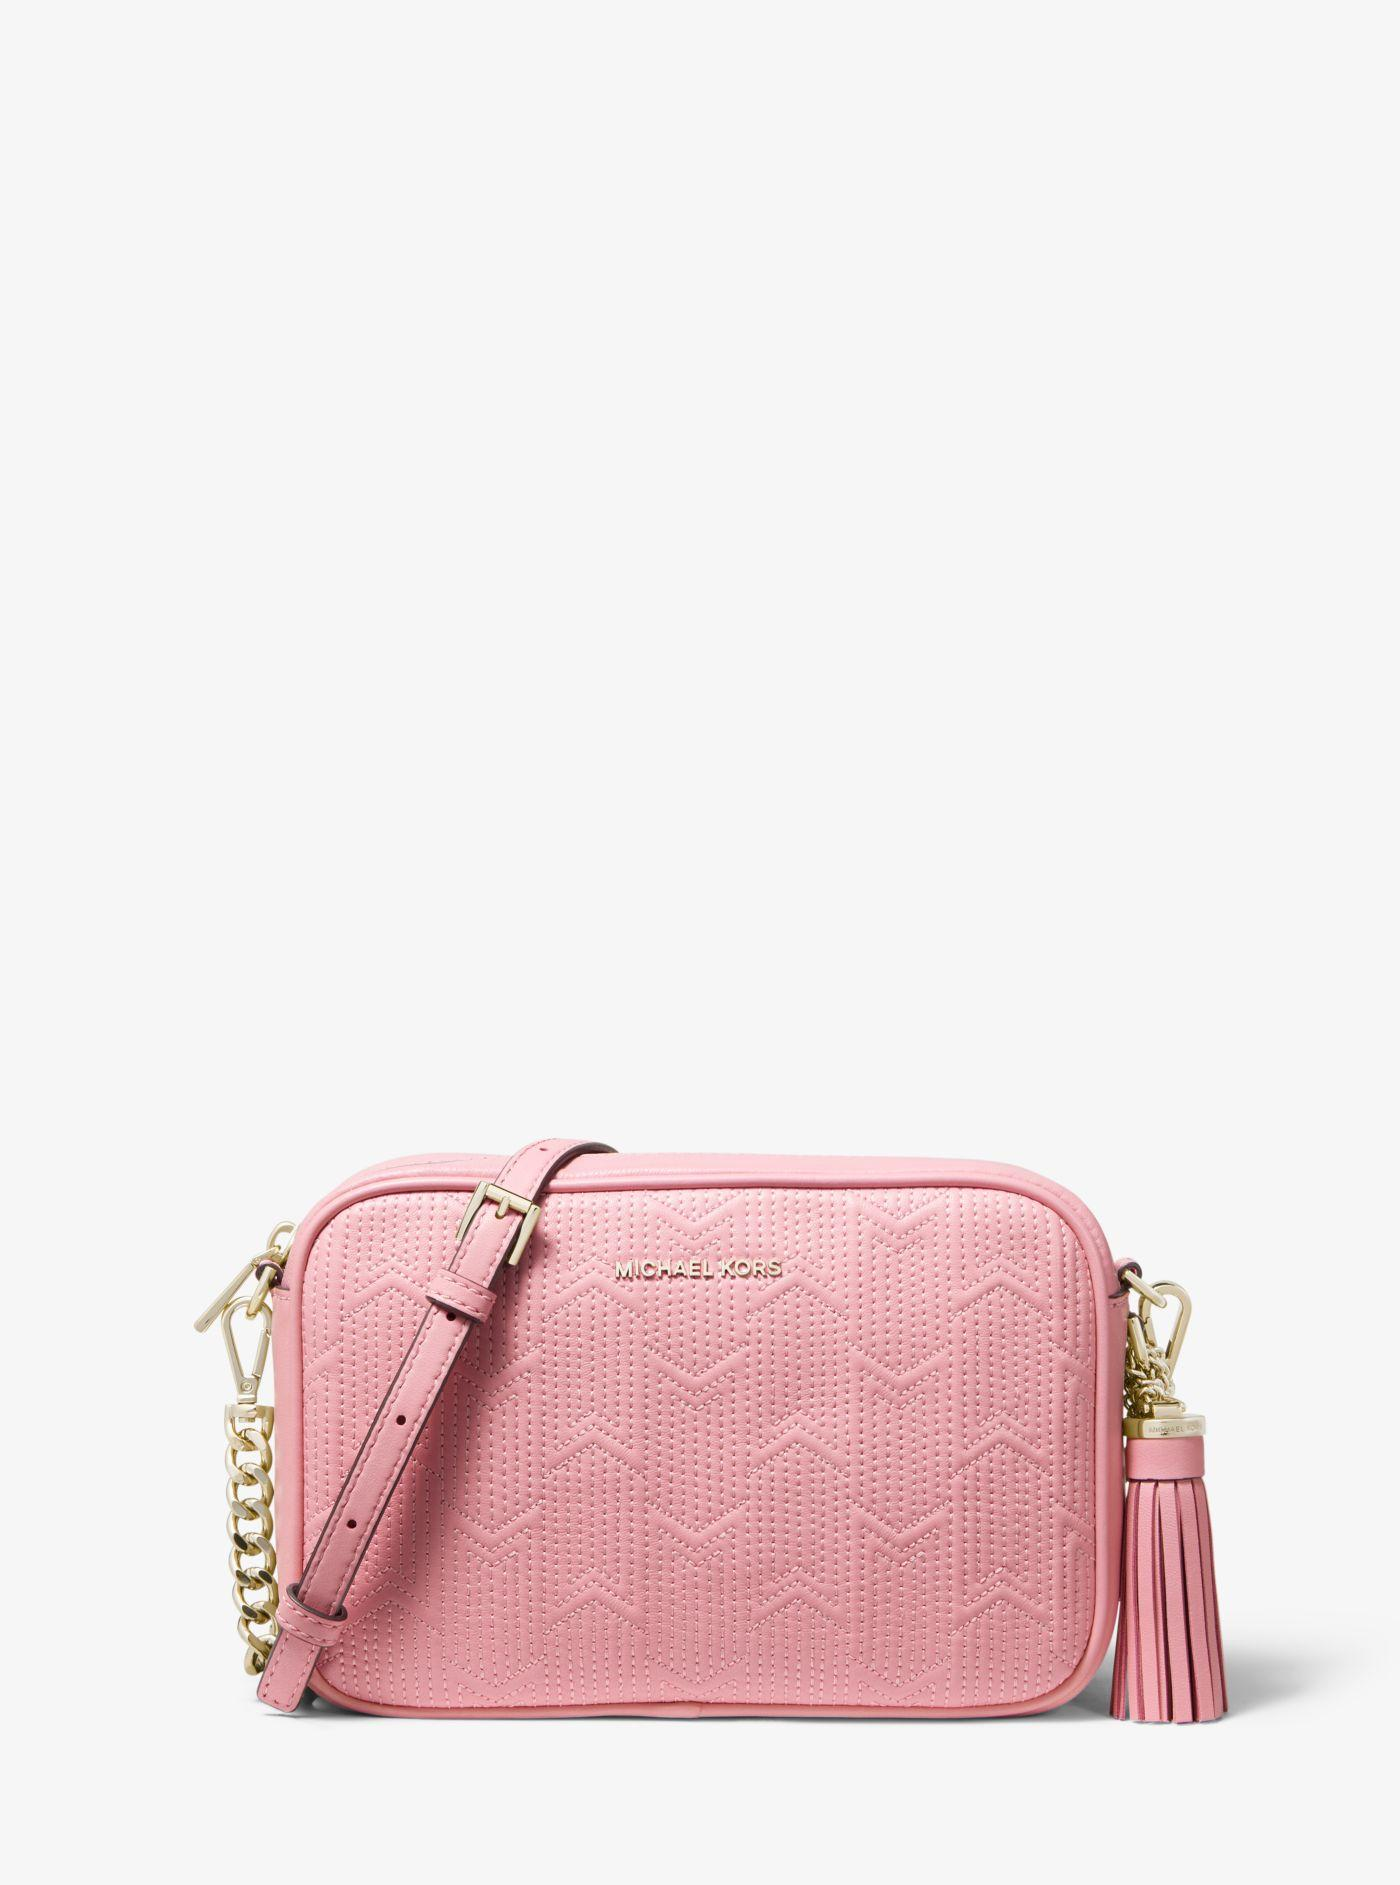 Mon Coach Deco ginny medium deco quilted leather crossbody bag